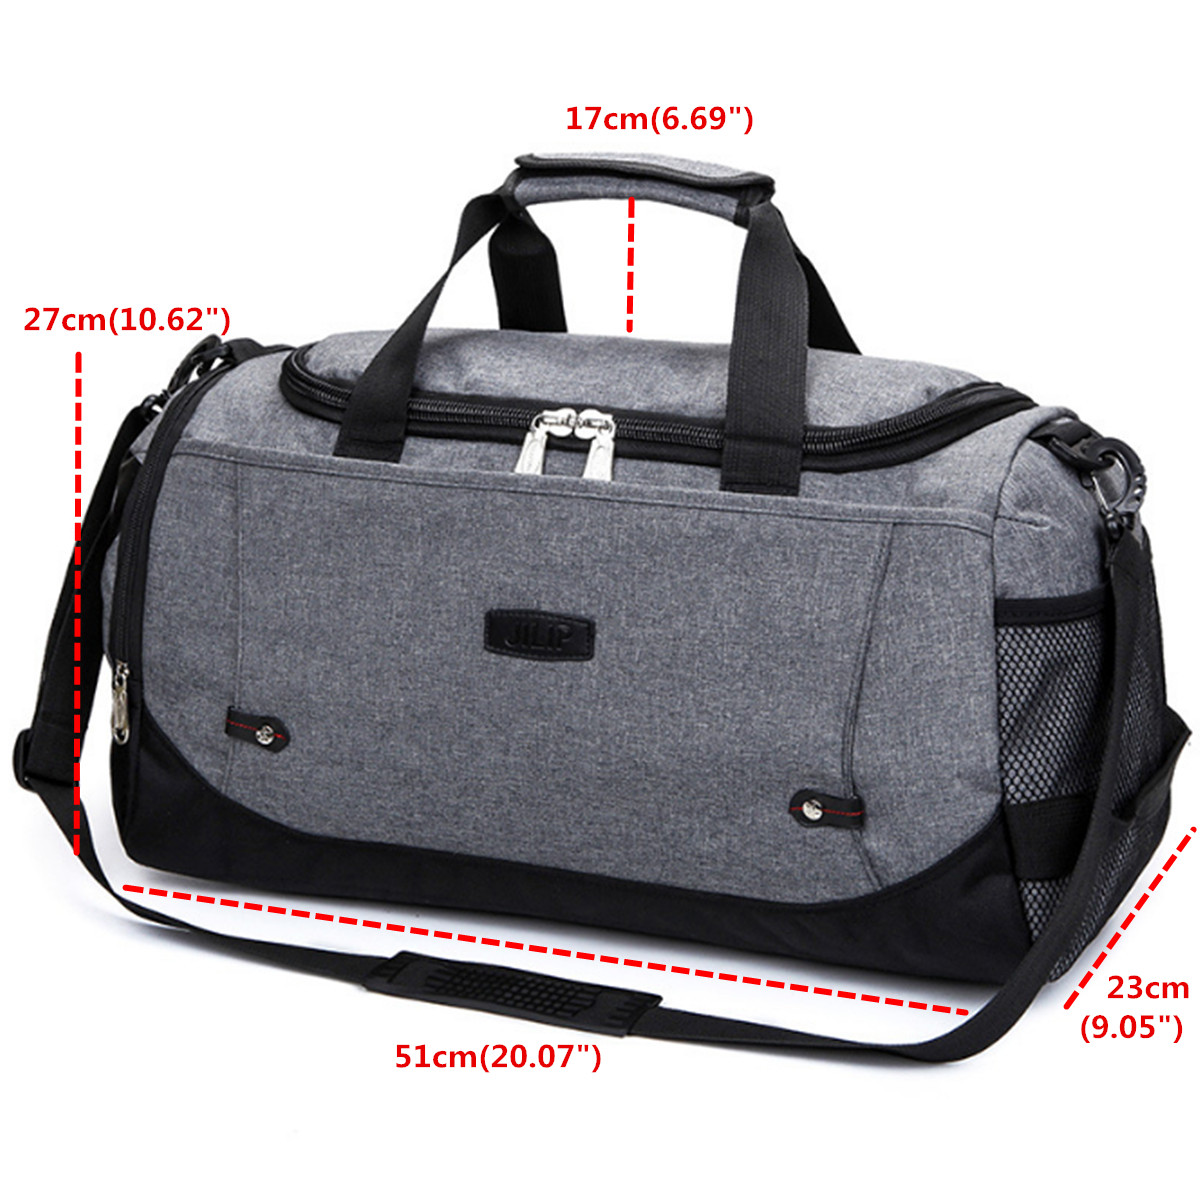 Gym Bag And Backpack: Waterproof Lock Travel With Shoes Compartment Handbag